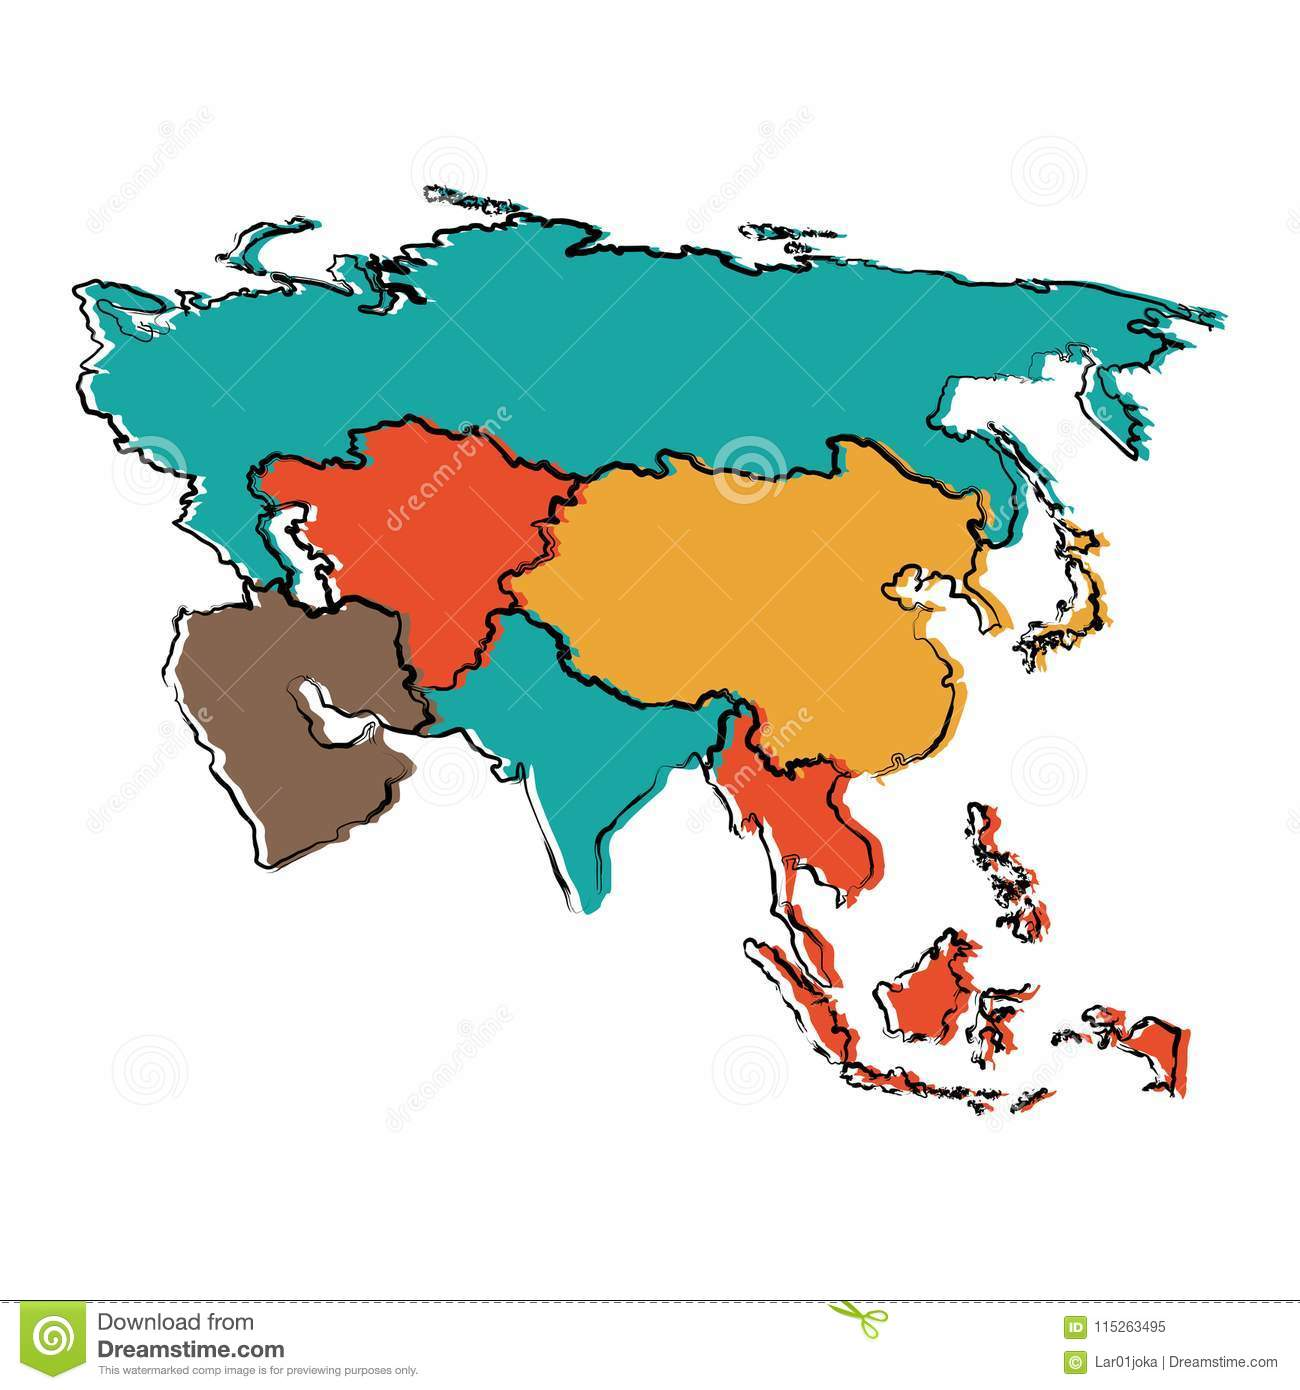 Political map of Asia stock vector. Illustration of color ... on beijing map asia, color map south america, color map australia, color us map, world clock asia, pyramids of asia, color europe map, north asia, color map united states, shape of asia, compass of asia, color map africa, world map asia, citytime zone map asia, educational maps of asia, coloring pages of animals in asia, color map egypt,